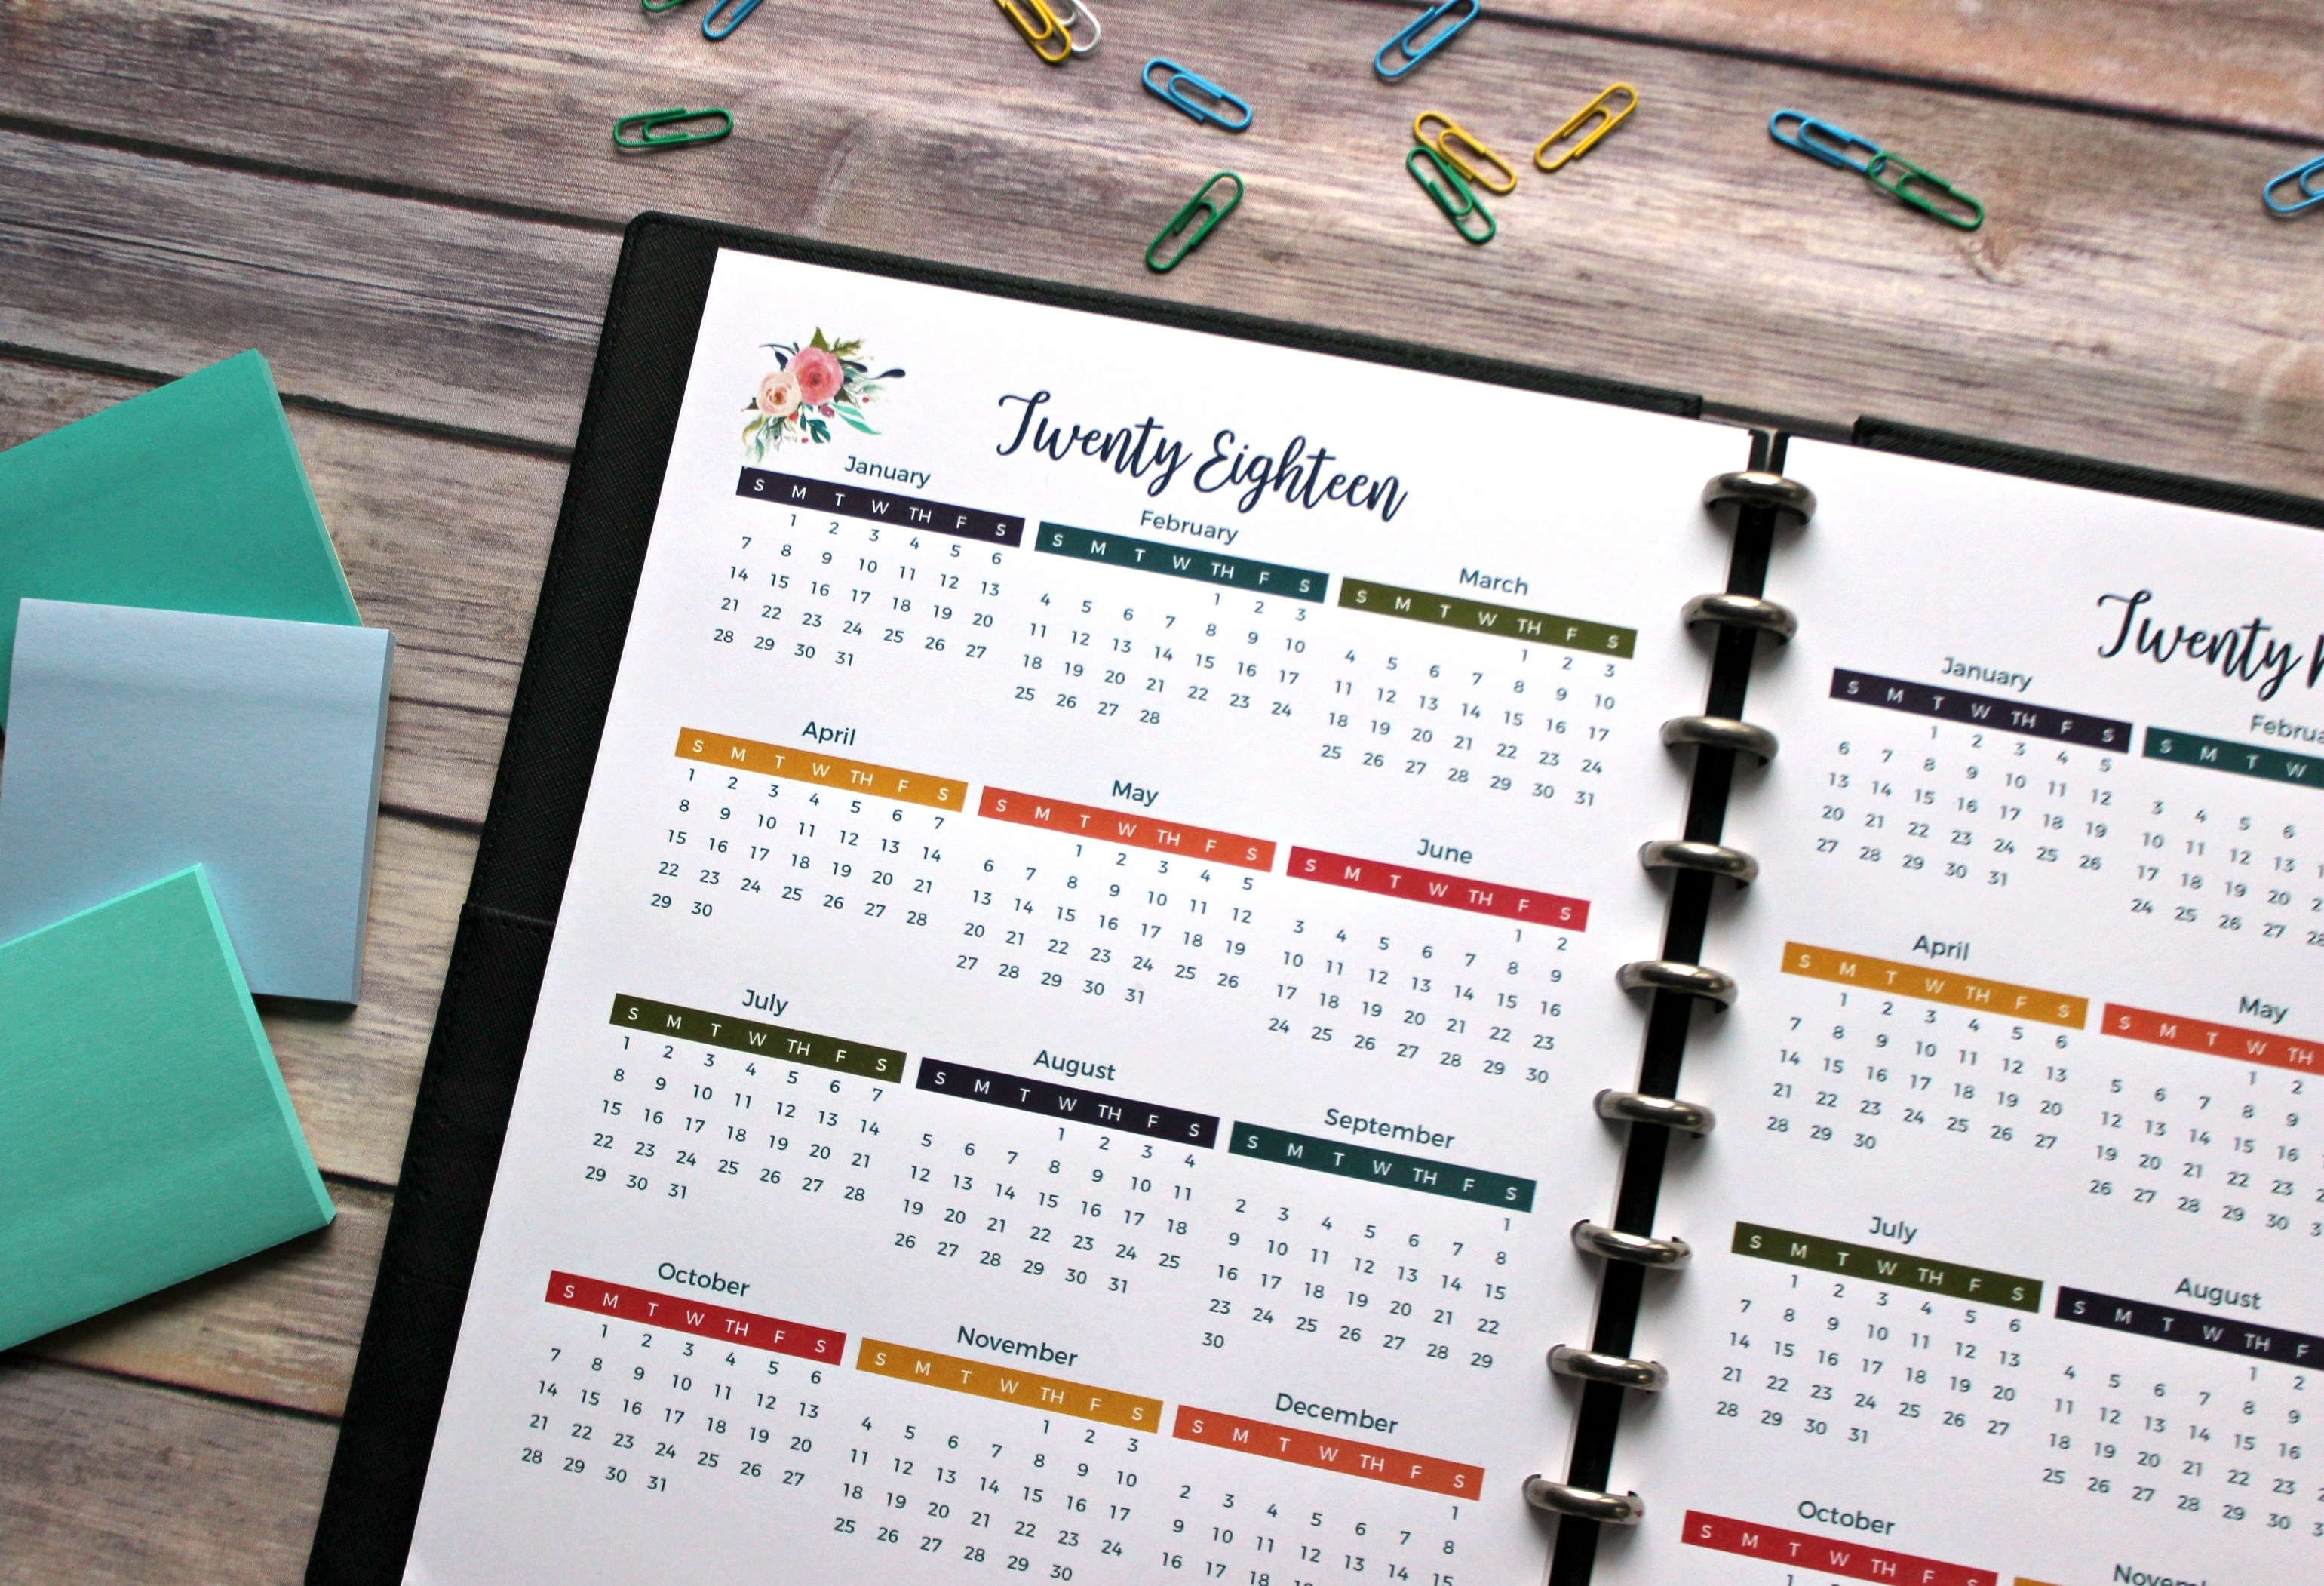 Make 2018 your BEST YEAR EVER!! Setting goals and being intentional with your time can make all the difference between having a blah year and a great one! Enter to win this 2018 planning and goal setting bundle, and have your best year ever! One lucky winner will win: a printable 2018 planner, printable goals workbook, and membership to the exclusive goal setting masterclass and goal achieving community so you'll get the guidance, support, and inspiration you need to make 2018 on for the books! #planner #printablecalendar #goals #2018 #calendar #printables #organization